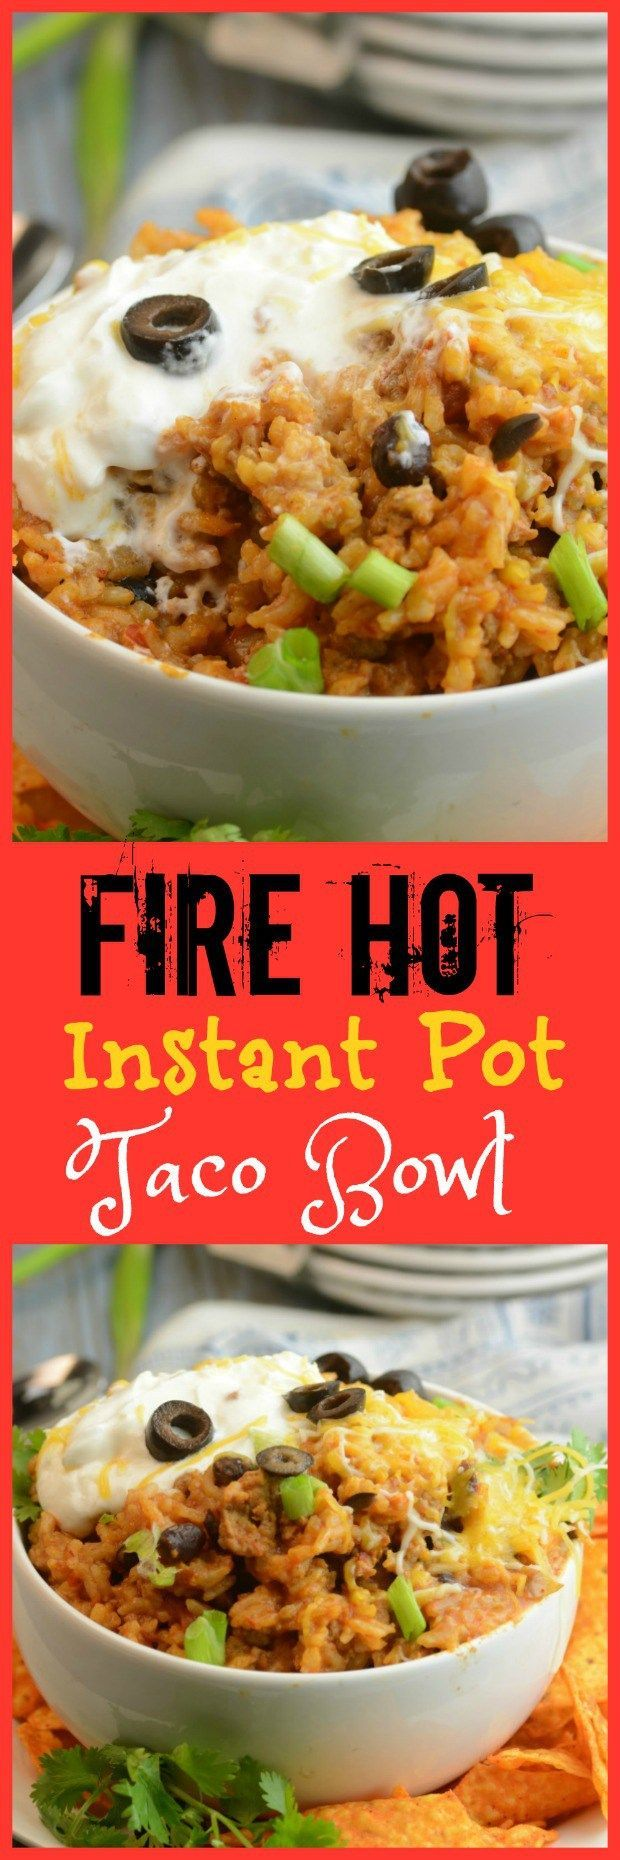 Fire Hot Instant Pot Taco Bowl                                                                                                                                                                                 More